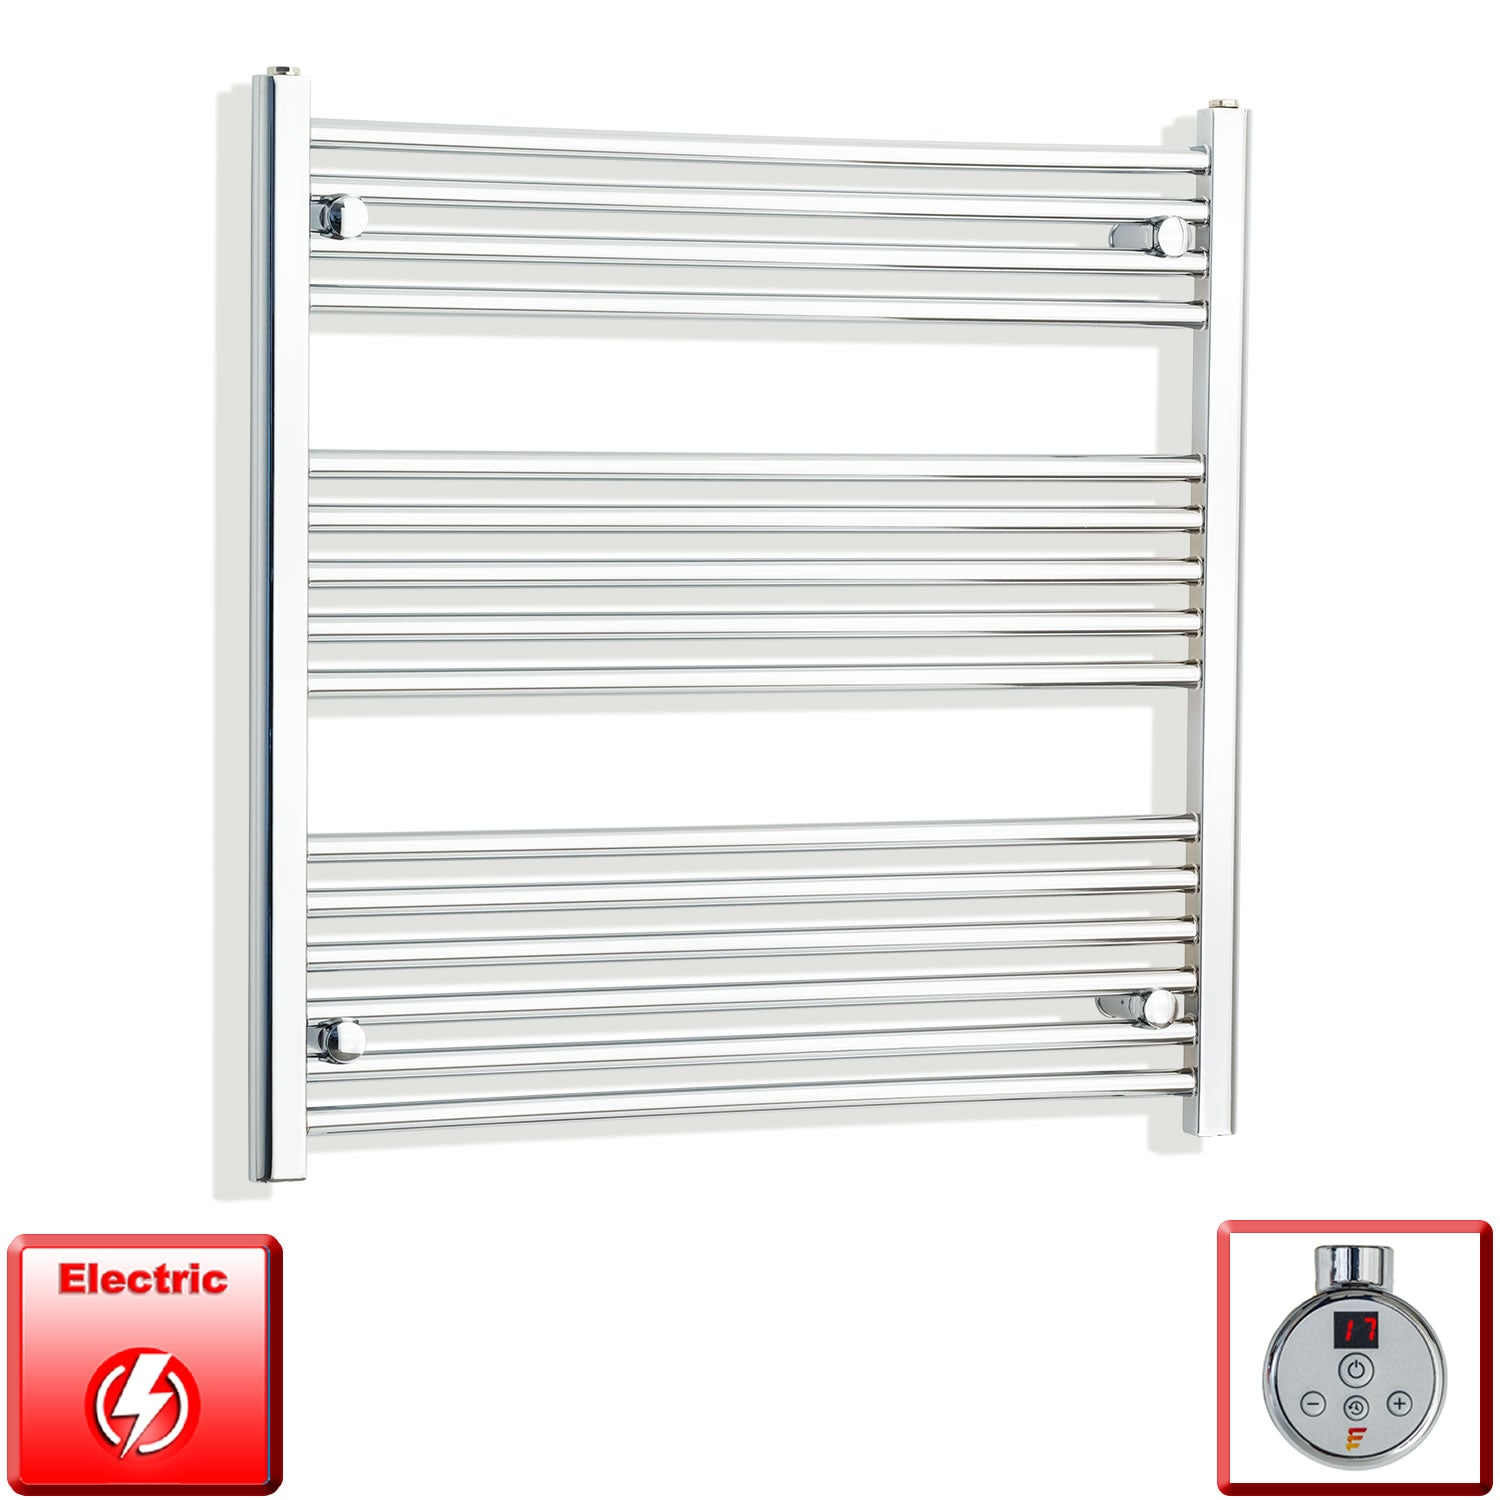 700mm Wide 800mm High Pre-Filled Chrome Electric Towel Rail Radiator With Thermostatic DIGI Element